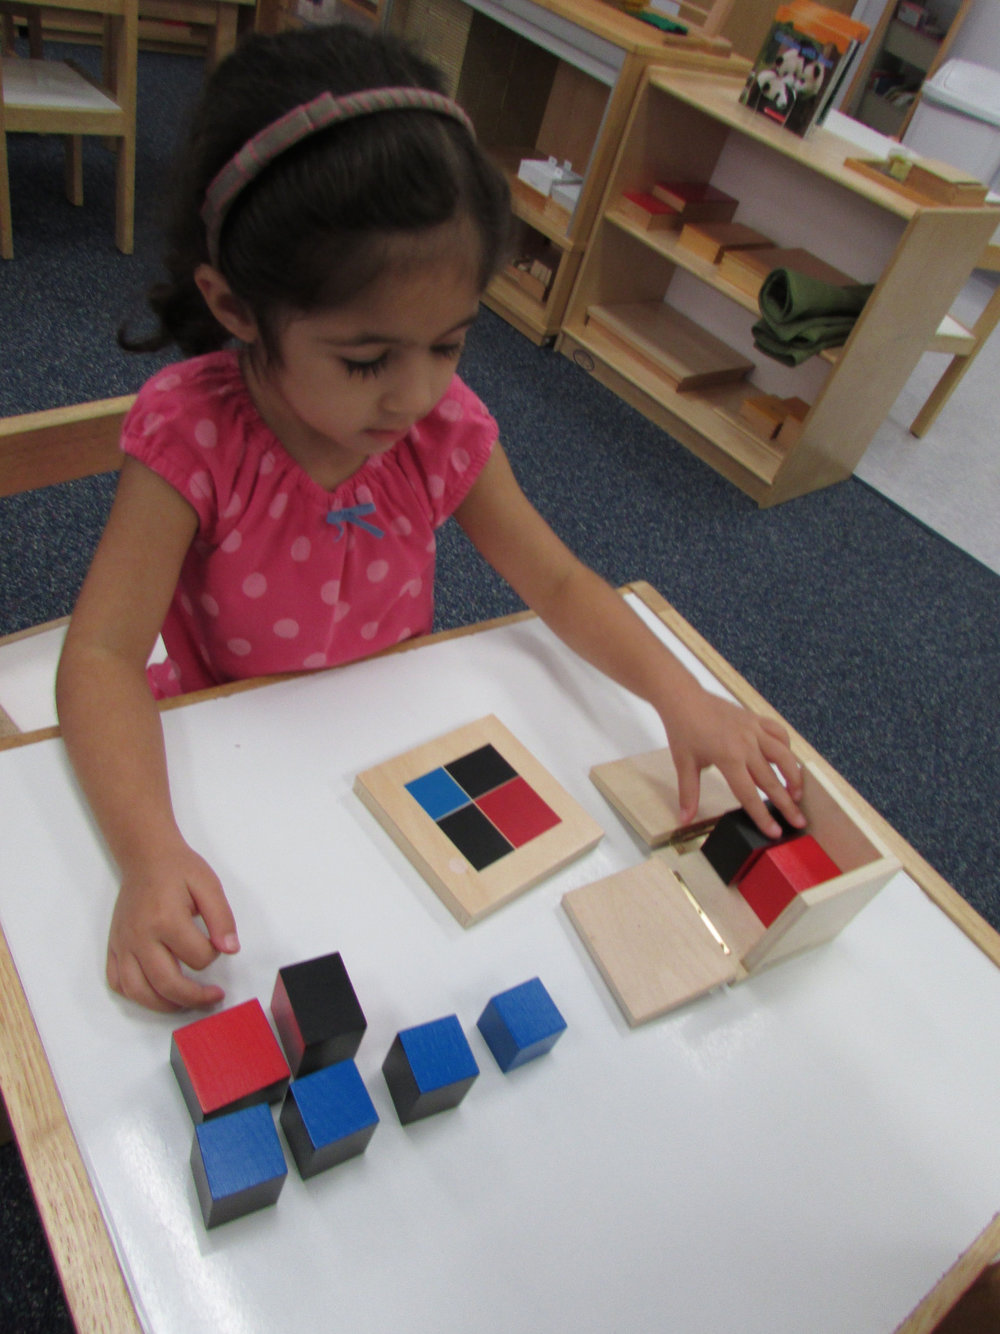 The Binomial Cube is a Sensorial work that introduces abstract Math concepts to the Primary 3 students. The early sensorial experience with the cube inspires them again later when they use the cube for Algebra during the Elementary years.